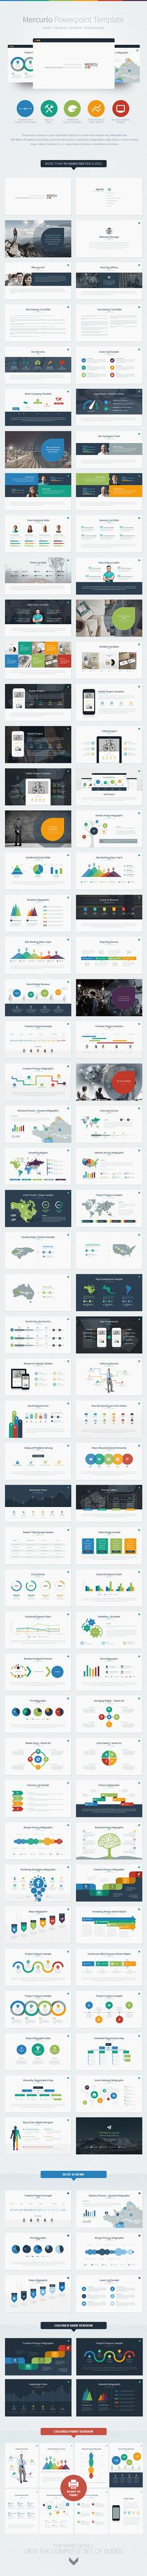 Mercurio PowerPoint Presentation Template | Premium and free graphic design resources